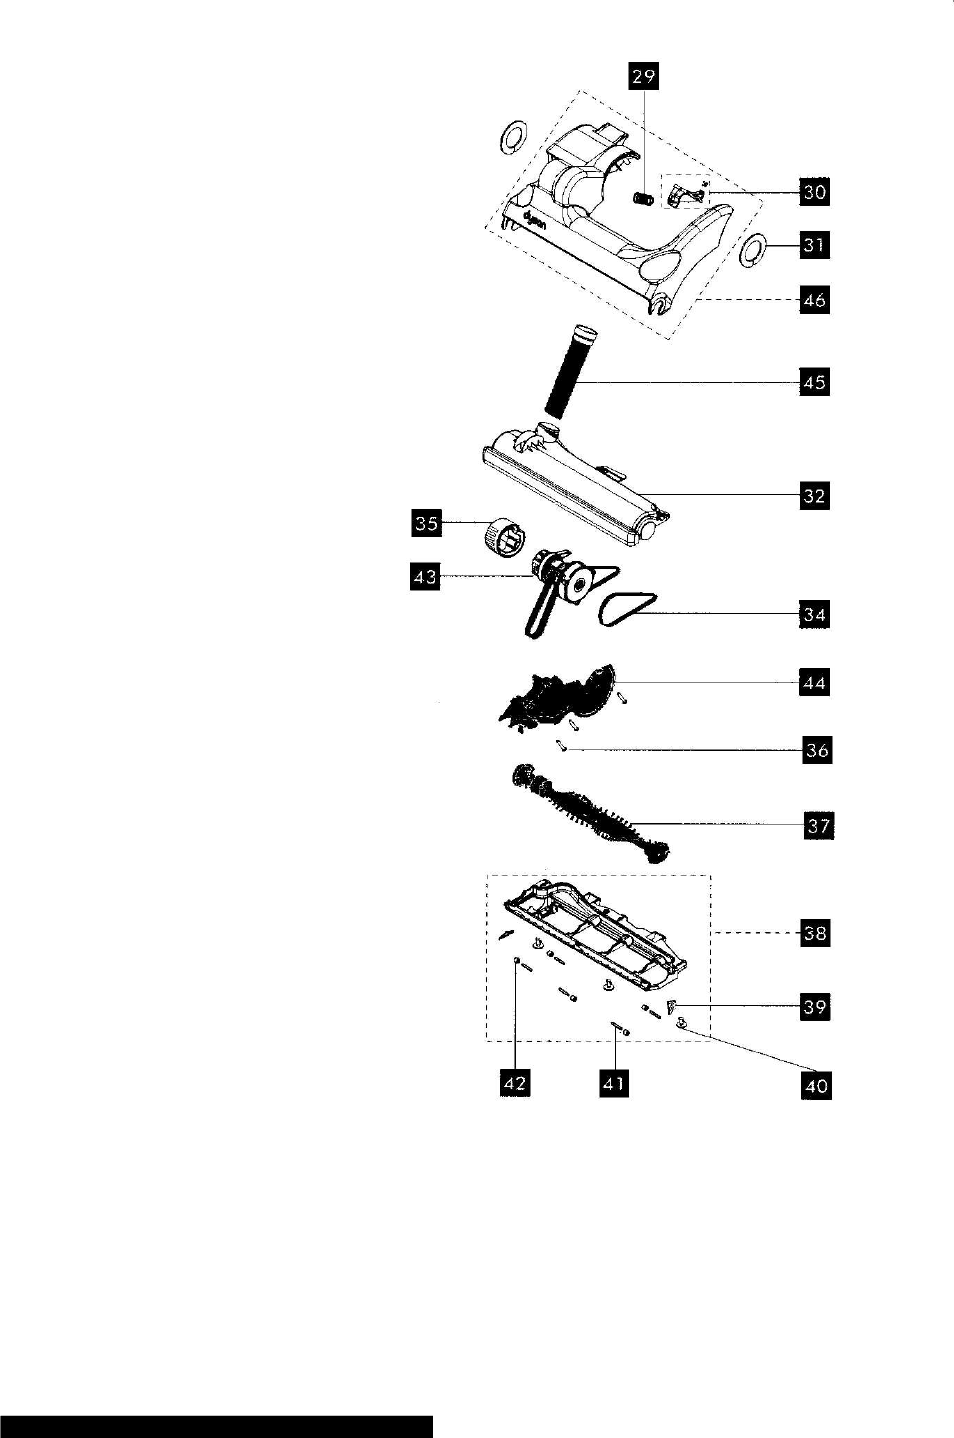 Dyson Dc14 Parts List 822403 Manualslib Makes It Easy To Find Animal Diagram Page 3 Of 12